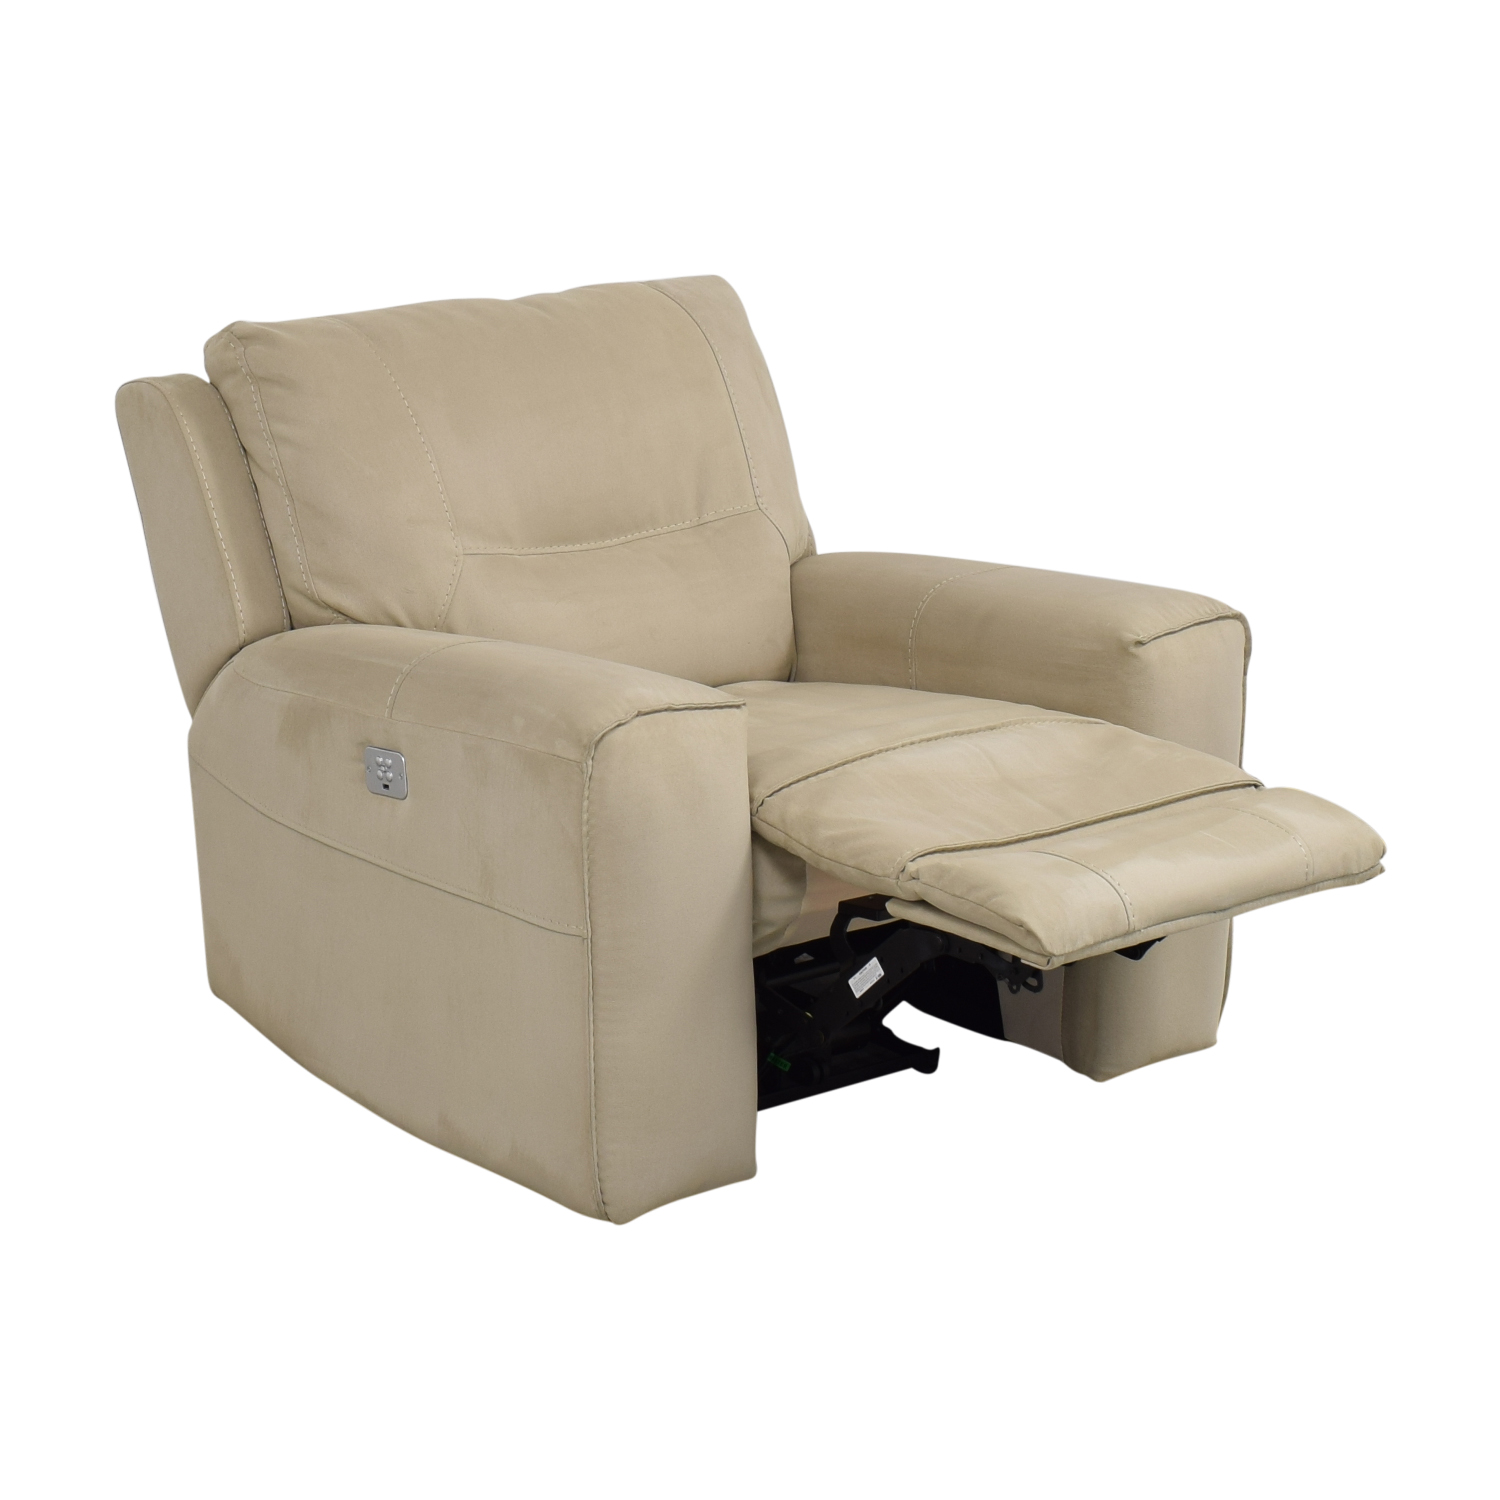 shop Macy's Power Recliner Chair Macy's Chairs